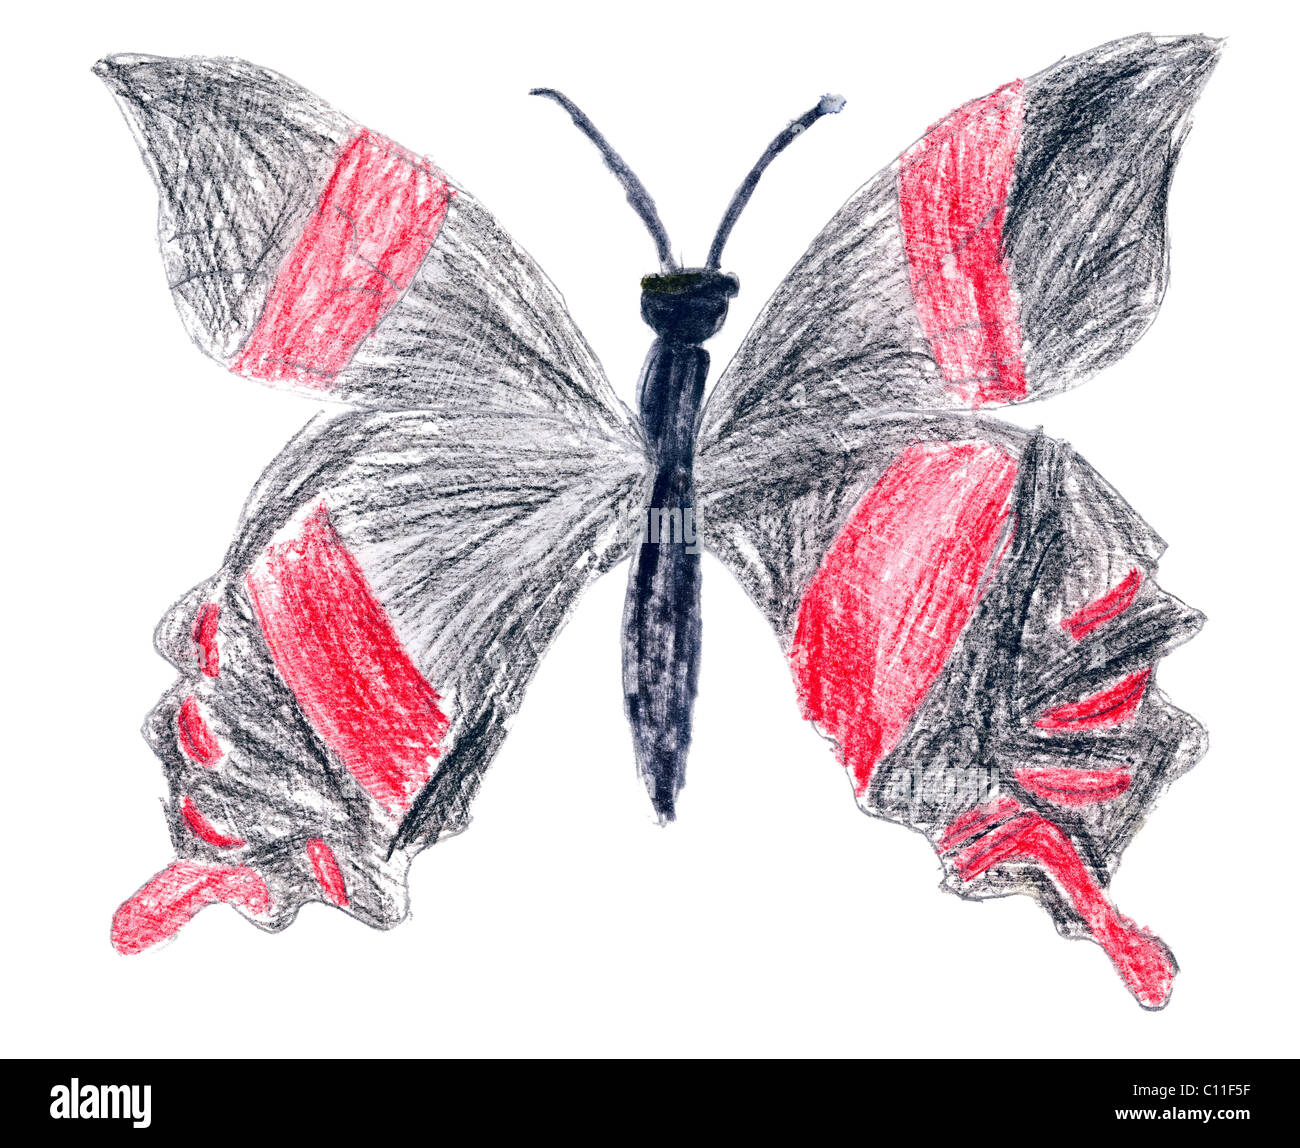 Child has drawn black butterfly on a paper - Stock Image